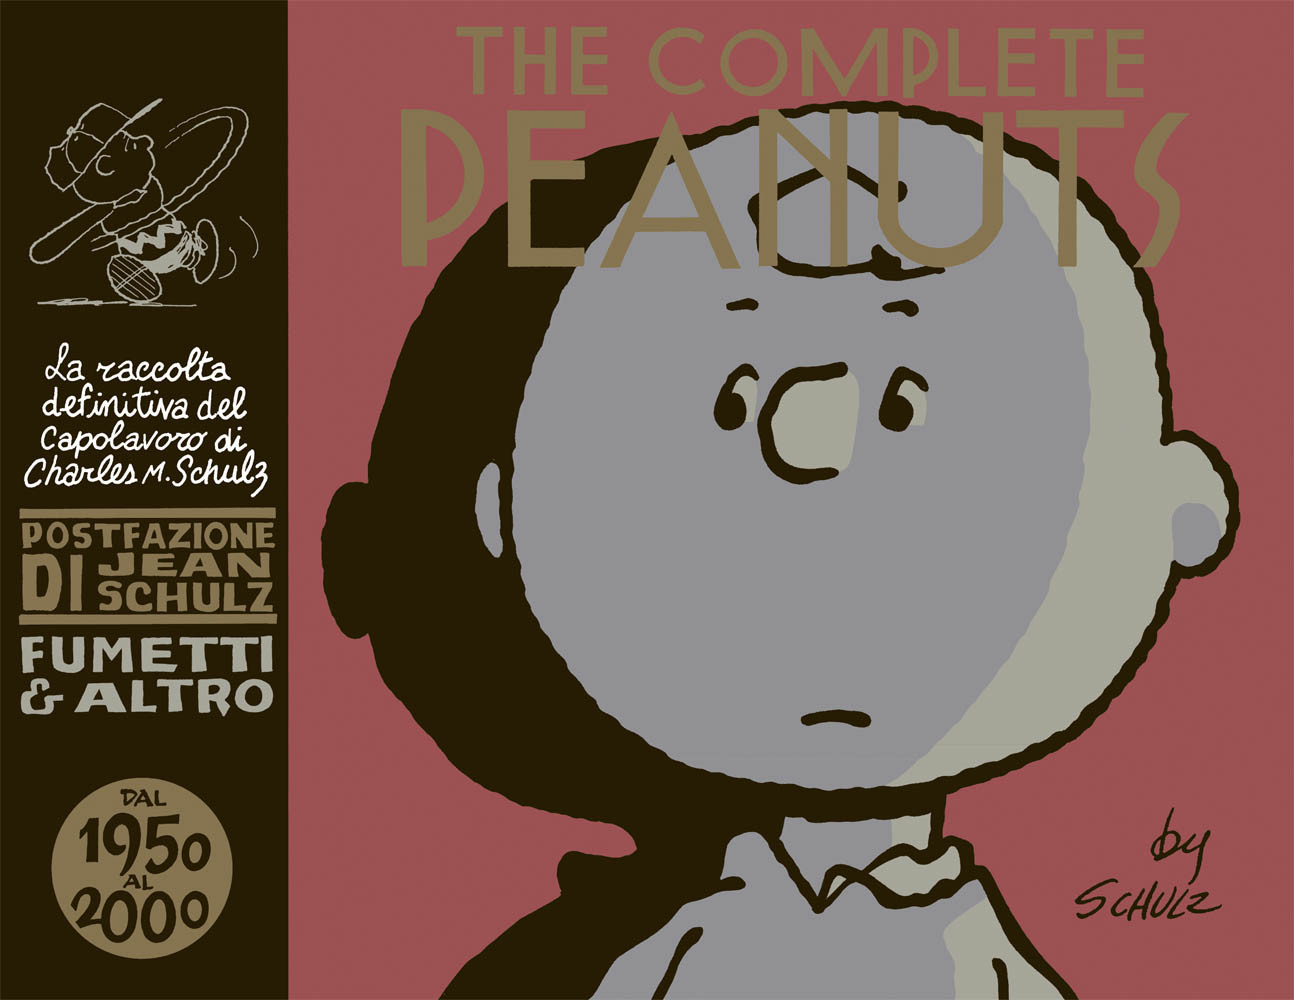 the complete peanuts panini